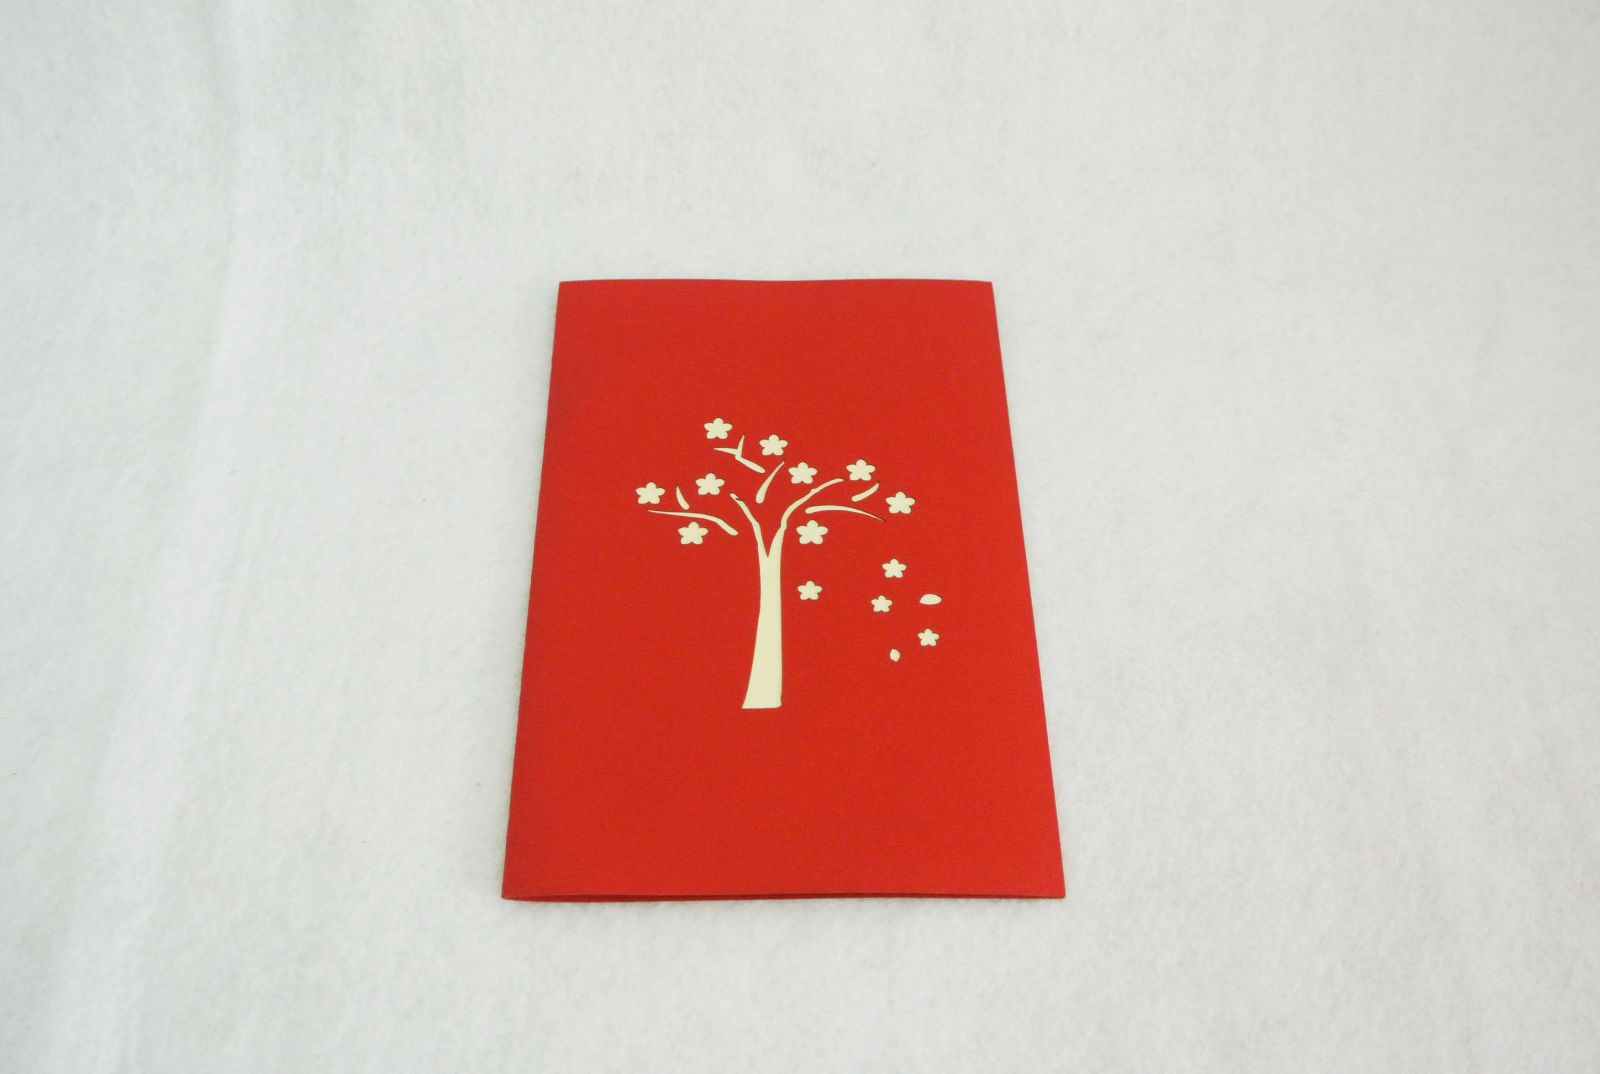 Cherry Red 150 Super Design Popupcard Specialty Pop Up Card Ya Got